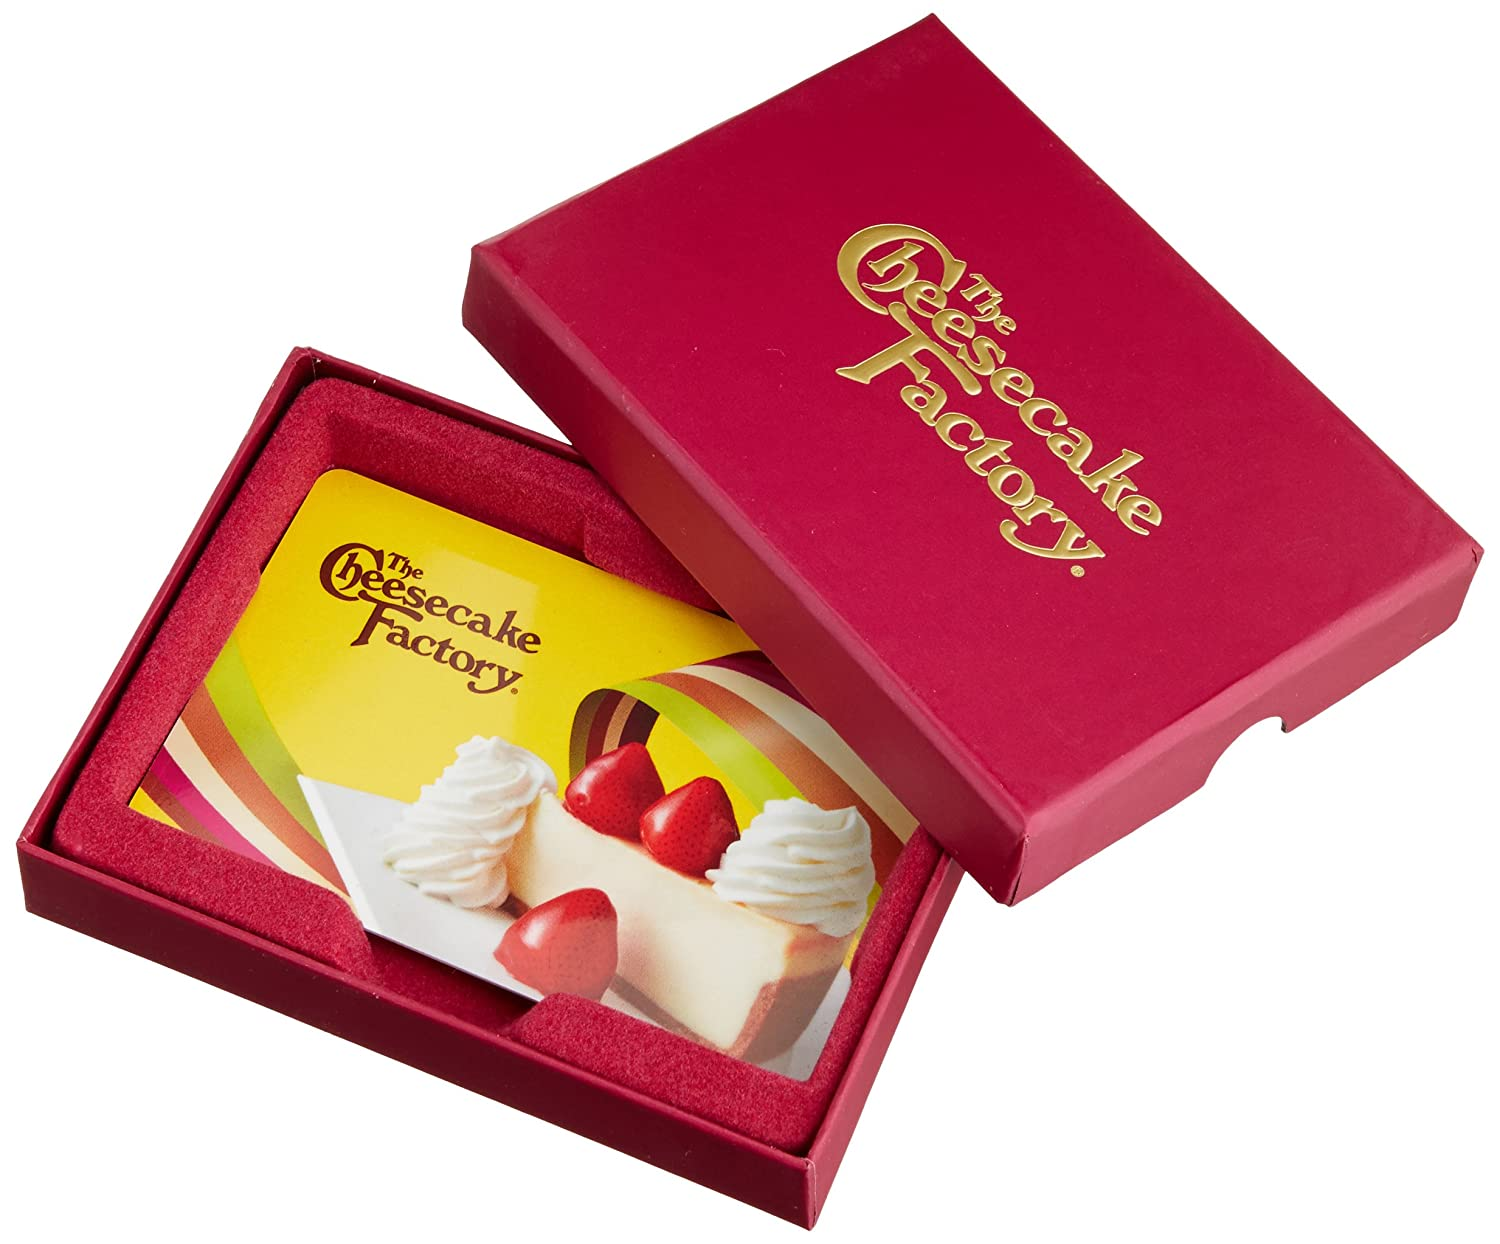 The Cheesecake Factory Gift Cards - In a Gift Box